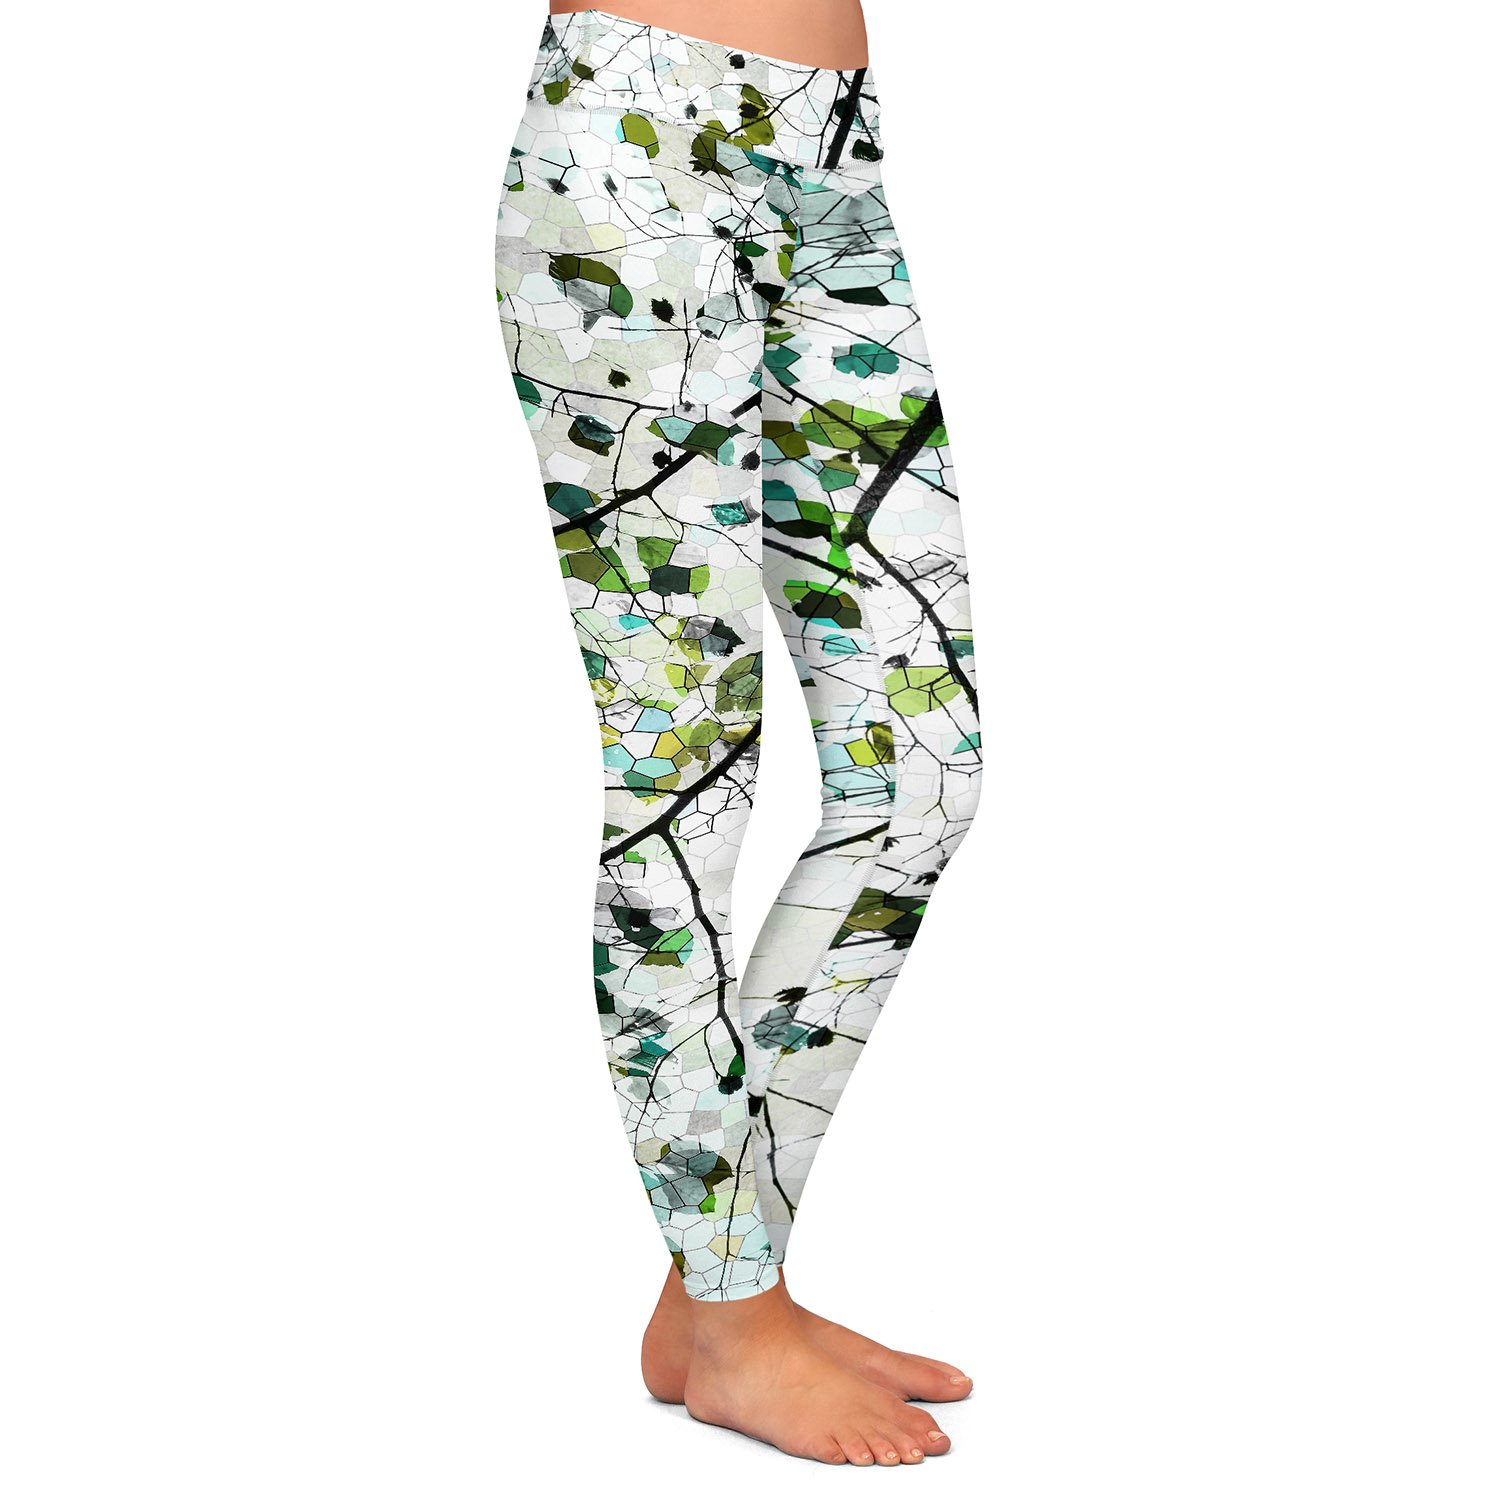 Green Veil Athletic Yoga Leggings from DiaNoche Designs by Iris Lehnhardt